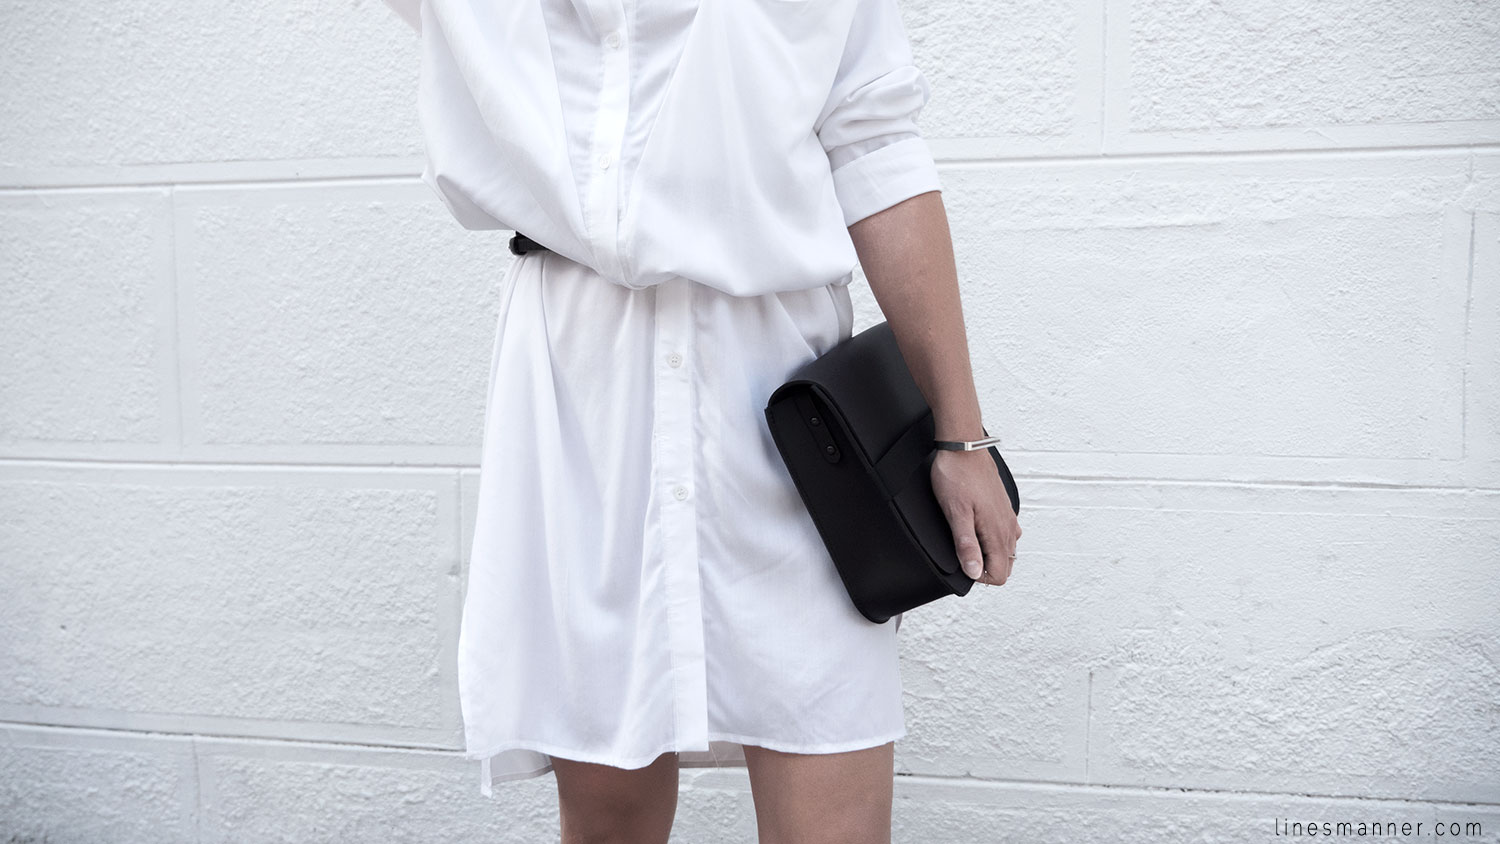 Lines-Manner-Whiteout-Fashion-Minimal-Clean-Fresh-Brigthly-All_White-Monochrome-Immaculate-Trend-Style-Sleek-Slouchy-Details-White_Shirt-Transeasonal-Dressing-Outfit-9